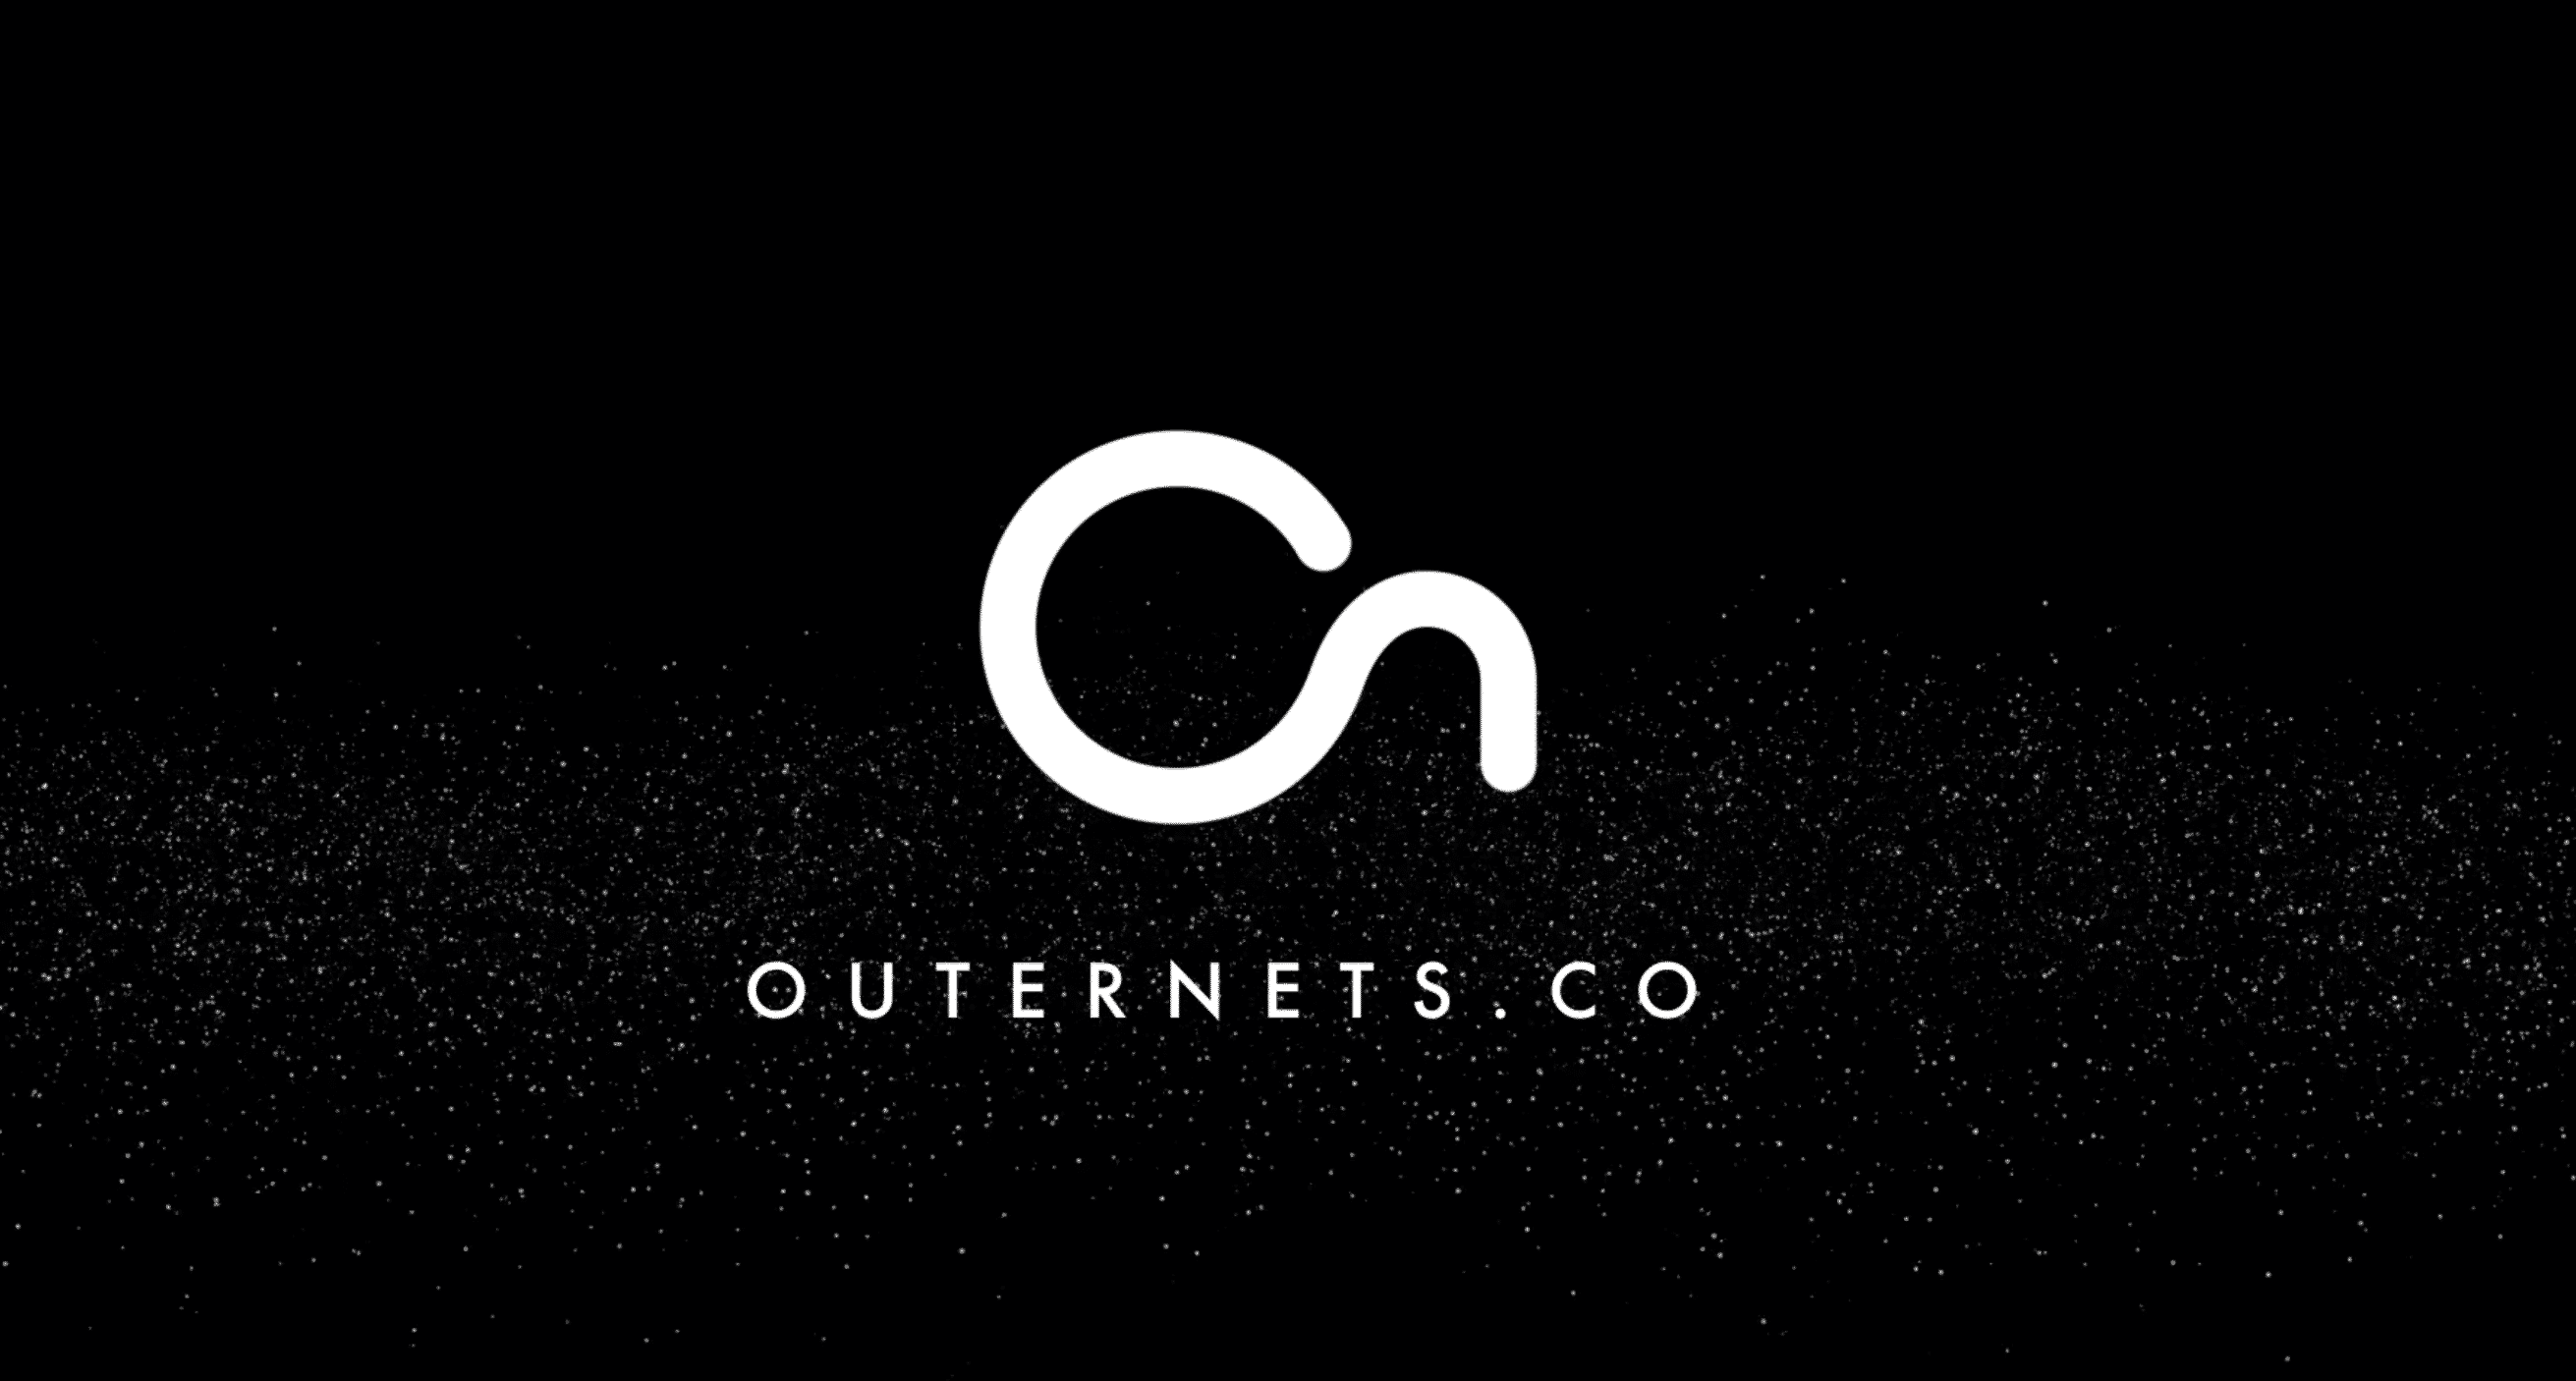 Outernets.co